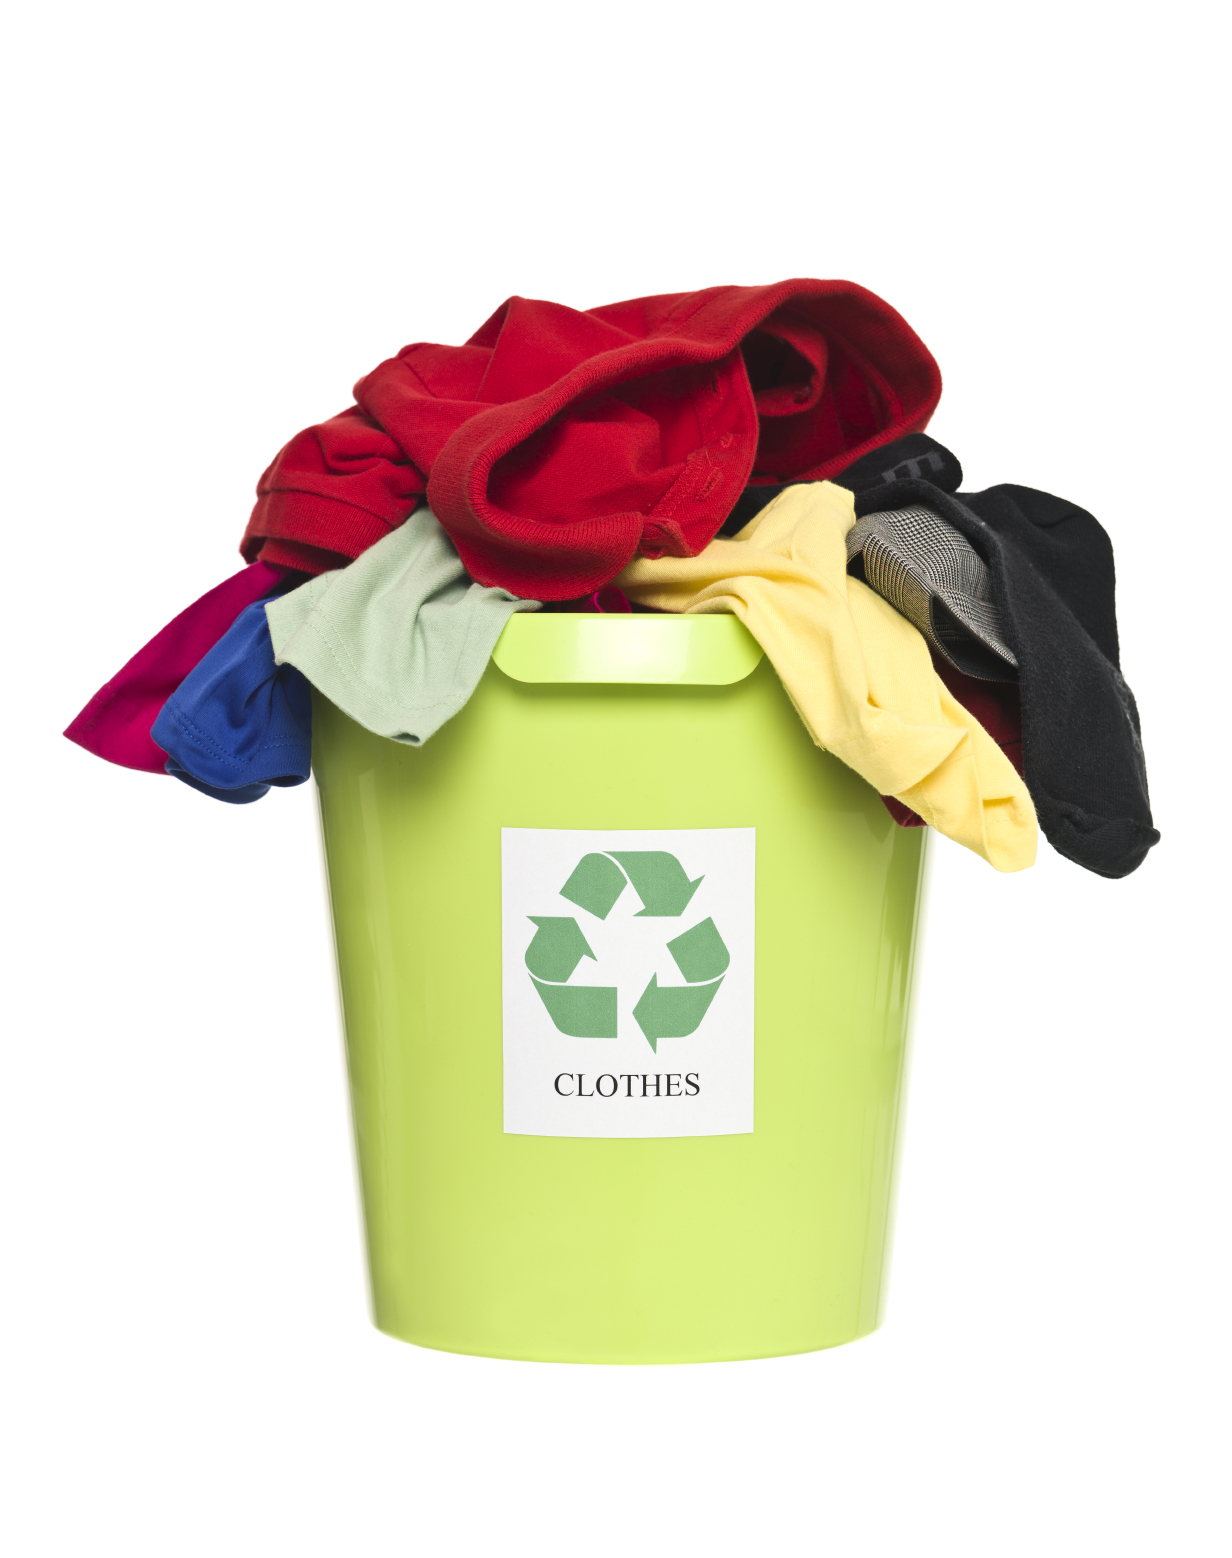 Recycling bin with clothes